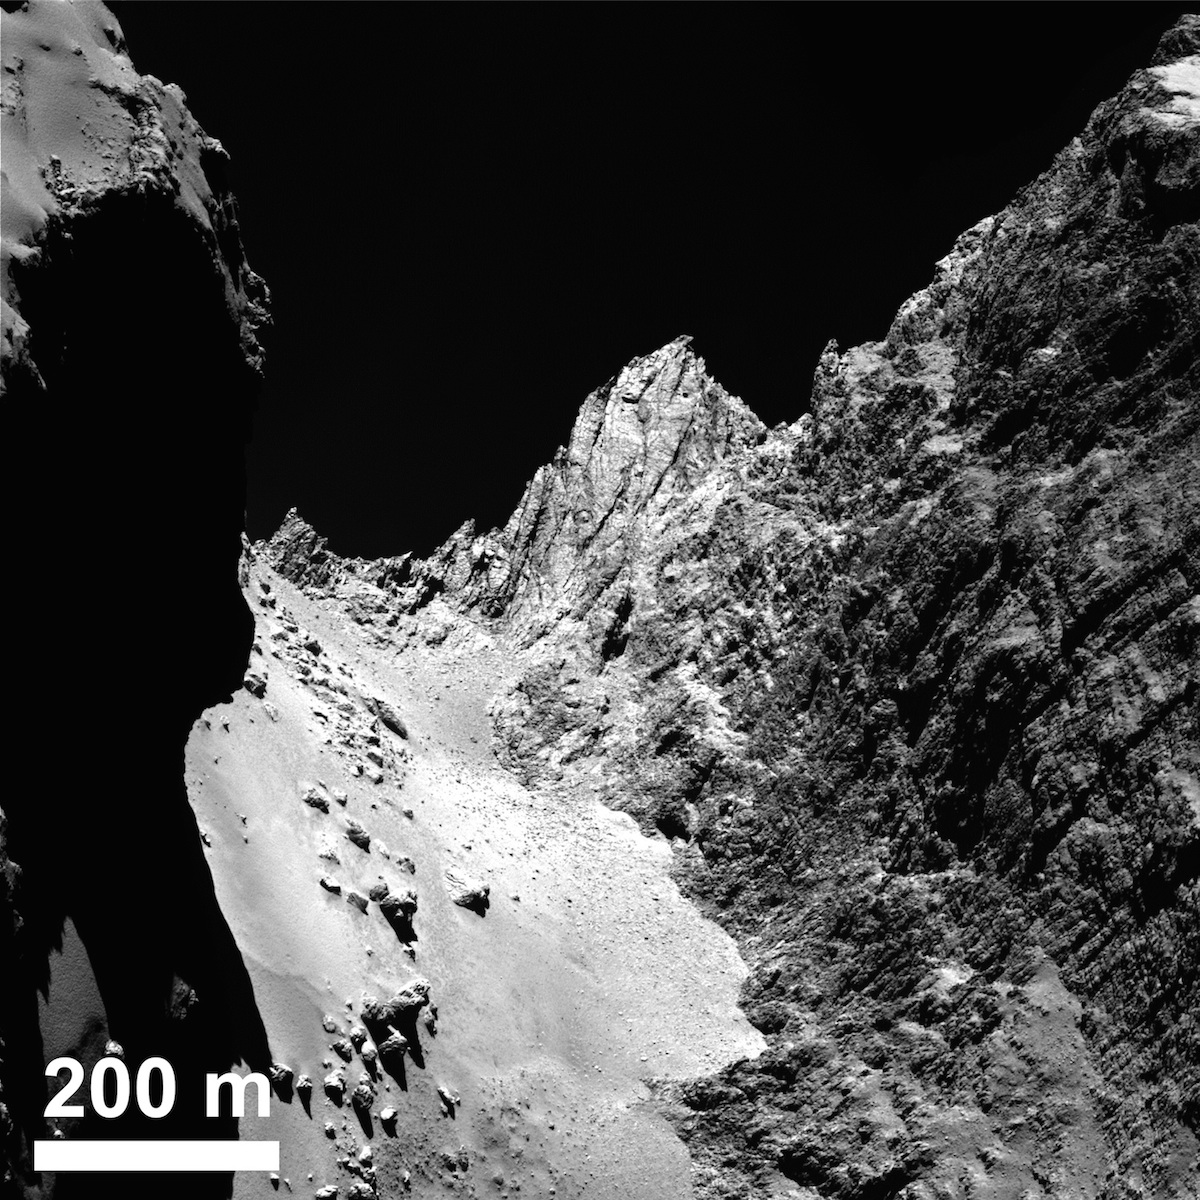 The Cliffs of Hathor (I love saying that). Rosetta's ability tosend amazingly detailed images like thisto Earth also means it can't see what's happening on a larger scale. The Rosetta mission has asked amateurs to help track the big picture while Rosetta (and with luck Philae) does its thing. Credit:  Esa/Rosetta/MPS for OsirisTeam MPS/UPD/LAM/IAA/SSO/INTA/UPM/DASP/IDA